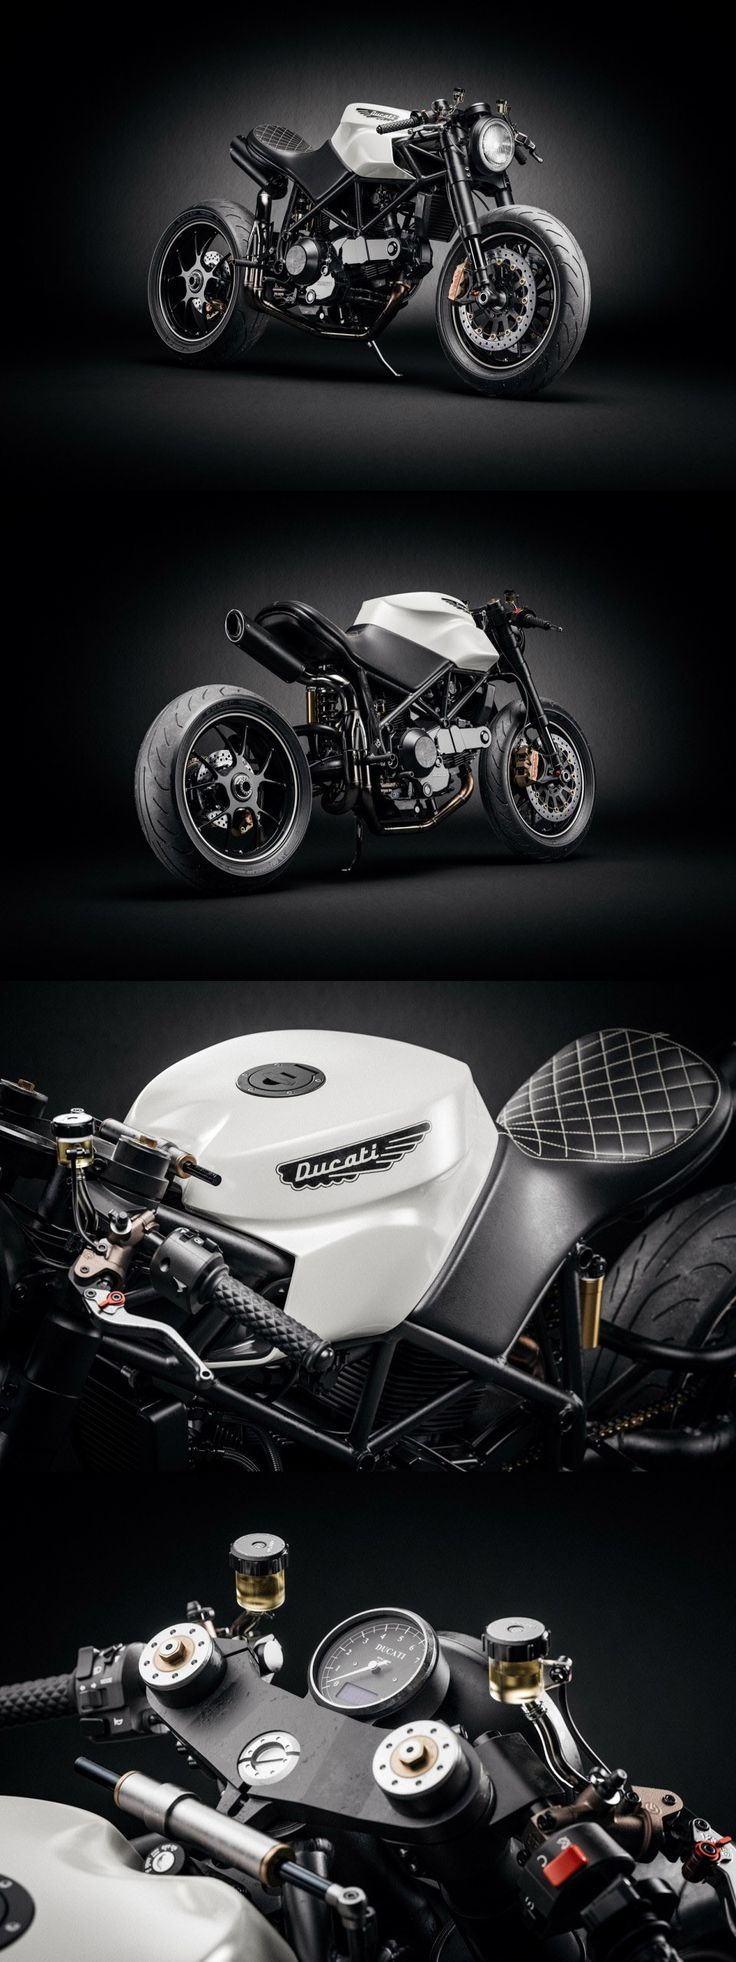 Amazing Ducati 916 Custom Café Fighter. More images at: http://bikebrewers.com/ducati-916-custum-cafe-fighter/  #demenciaendosruedas